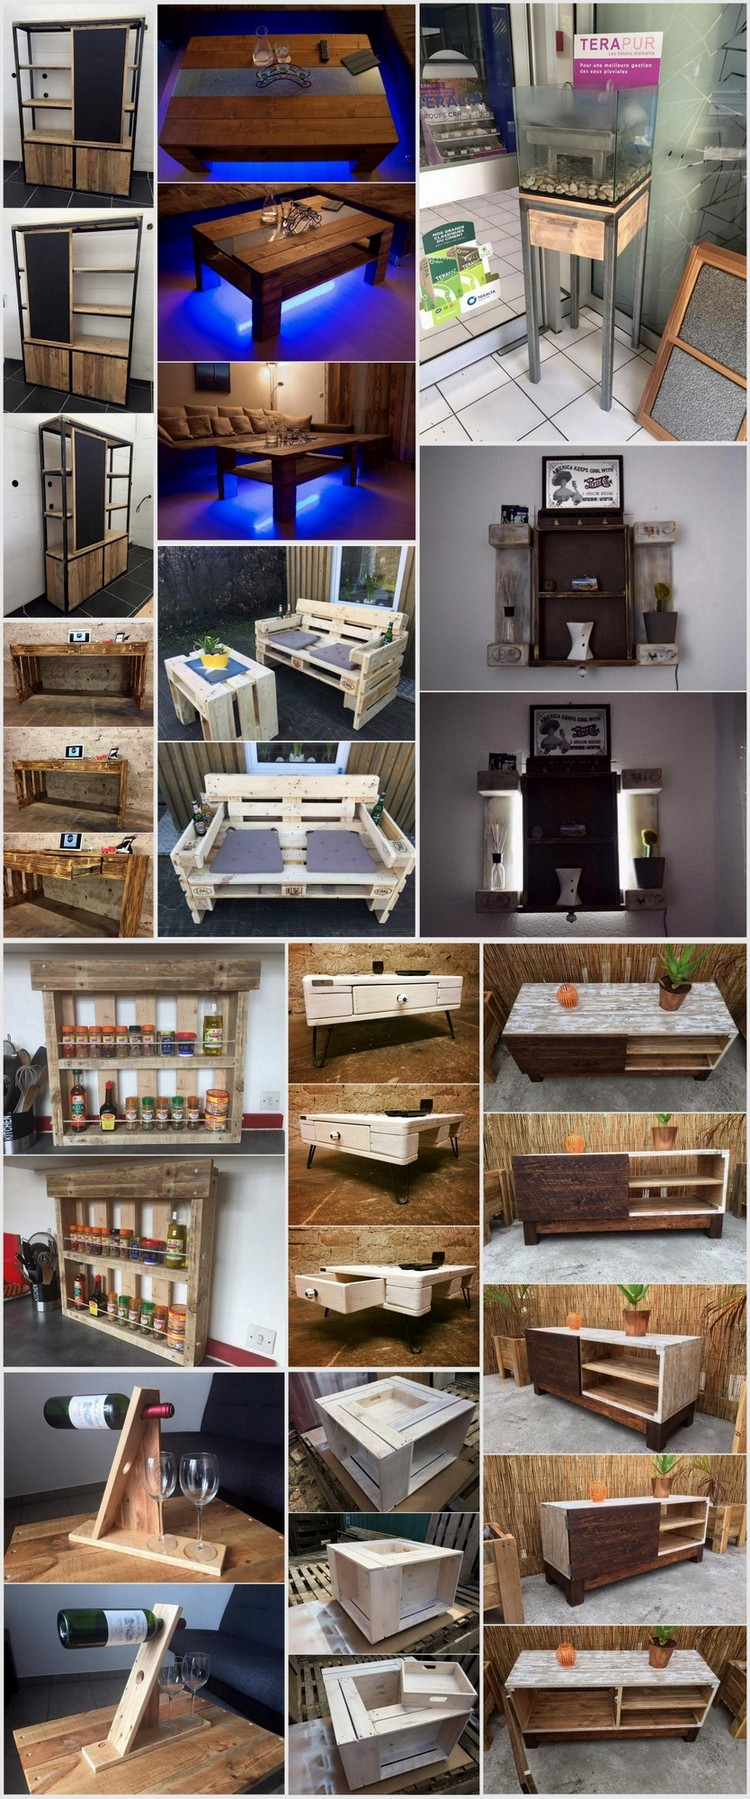 easy to make furniture ideas. Wonderful Pallet Wood Furniture Ideas That Are Easy to Make